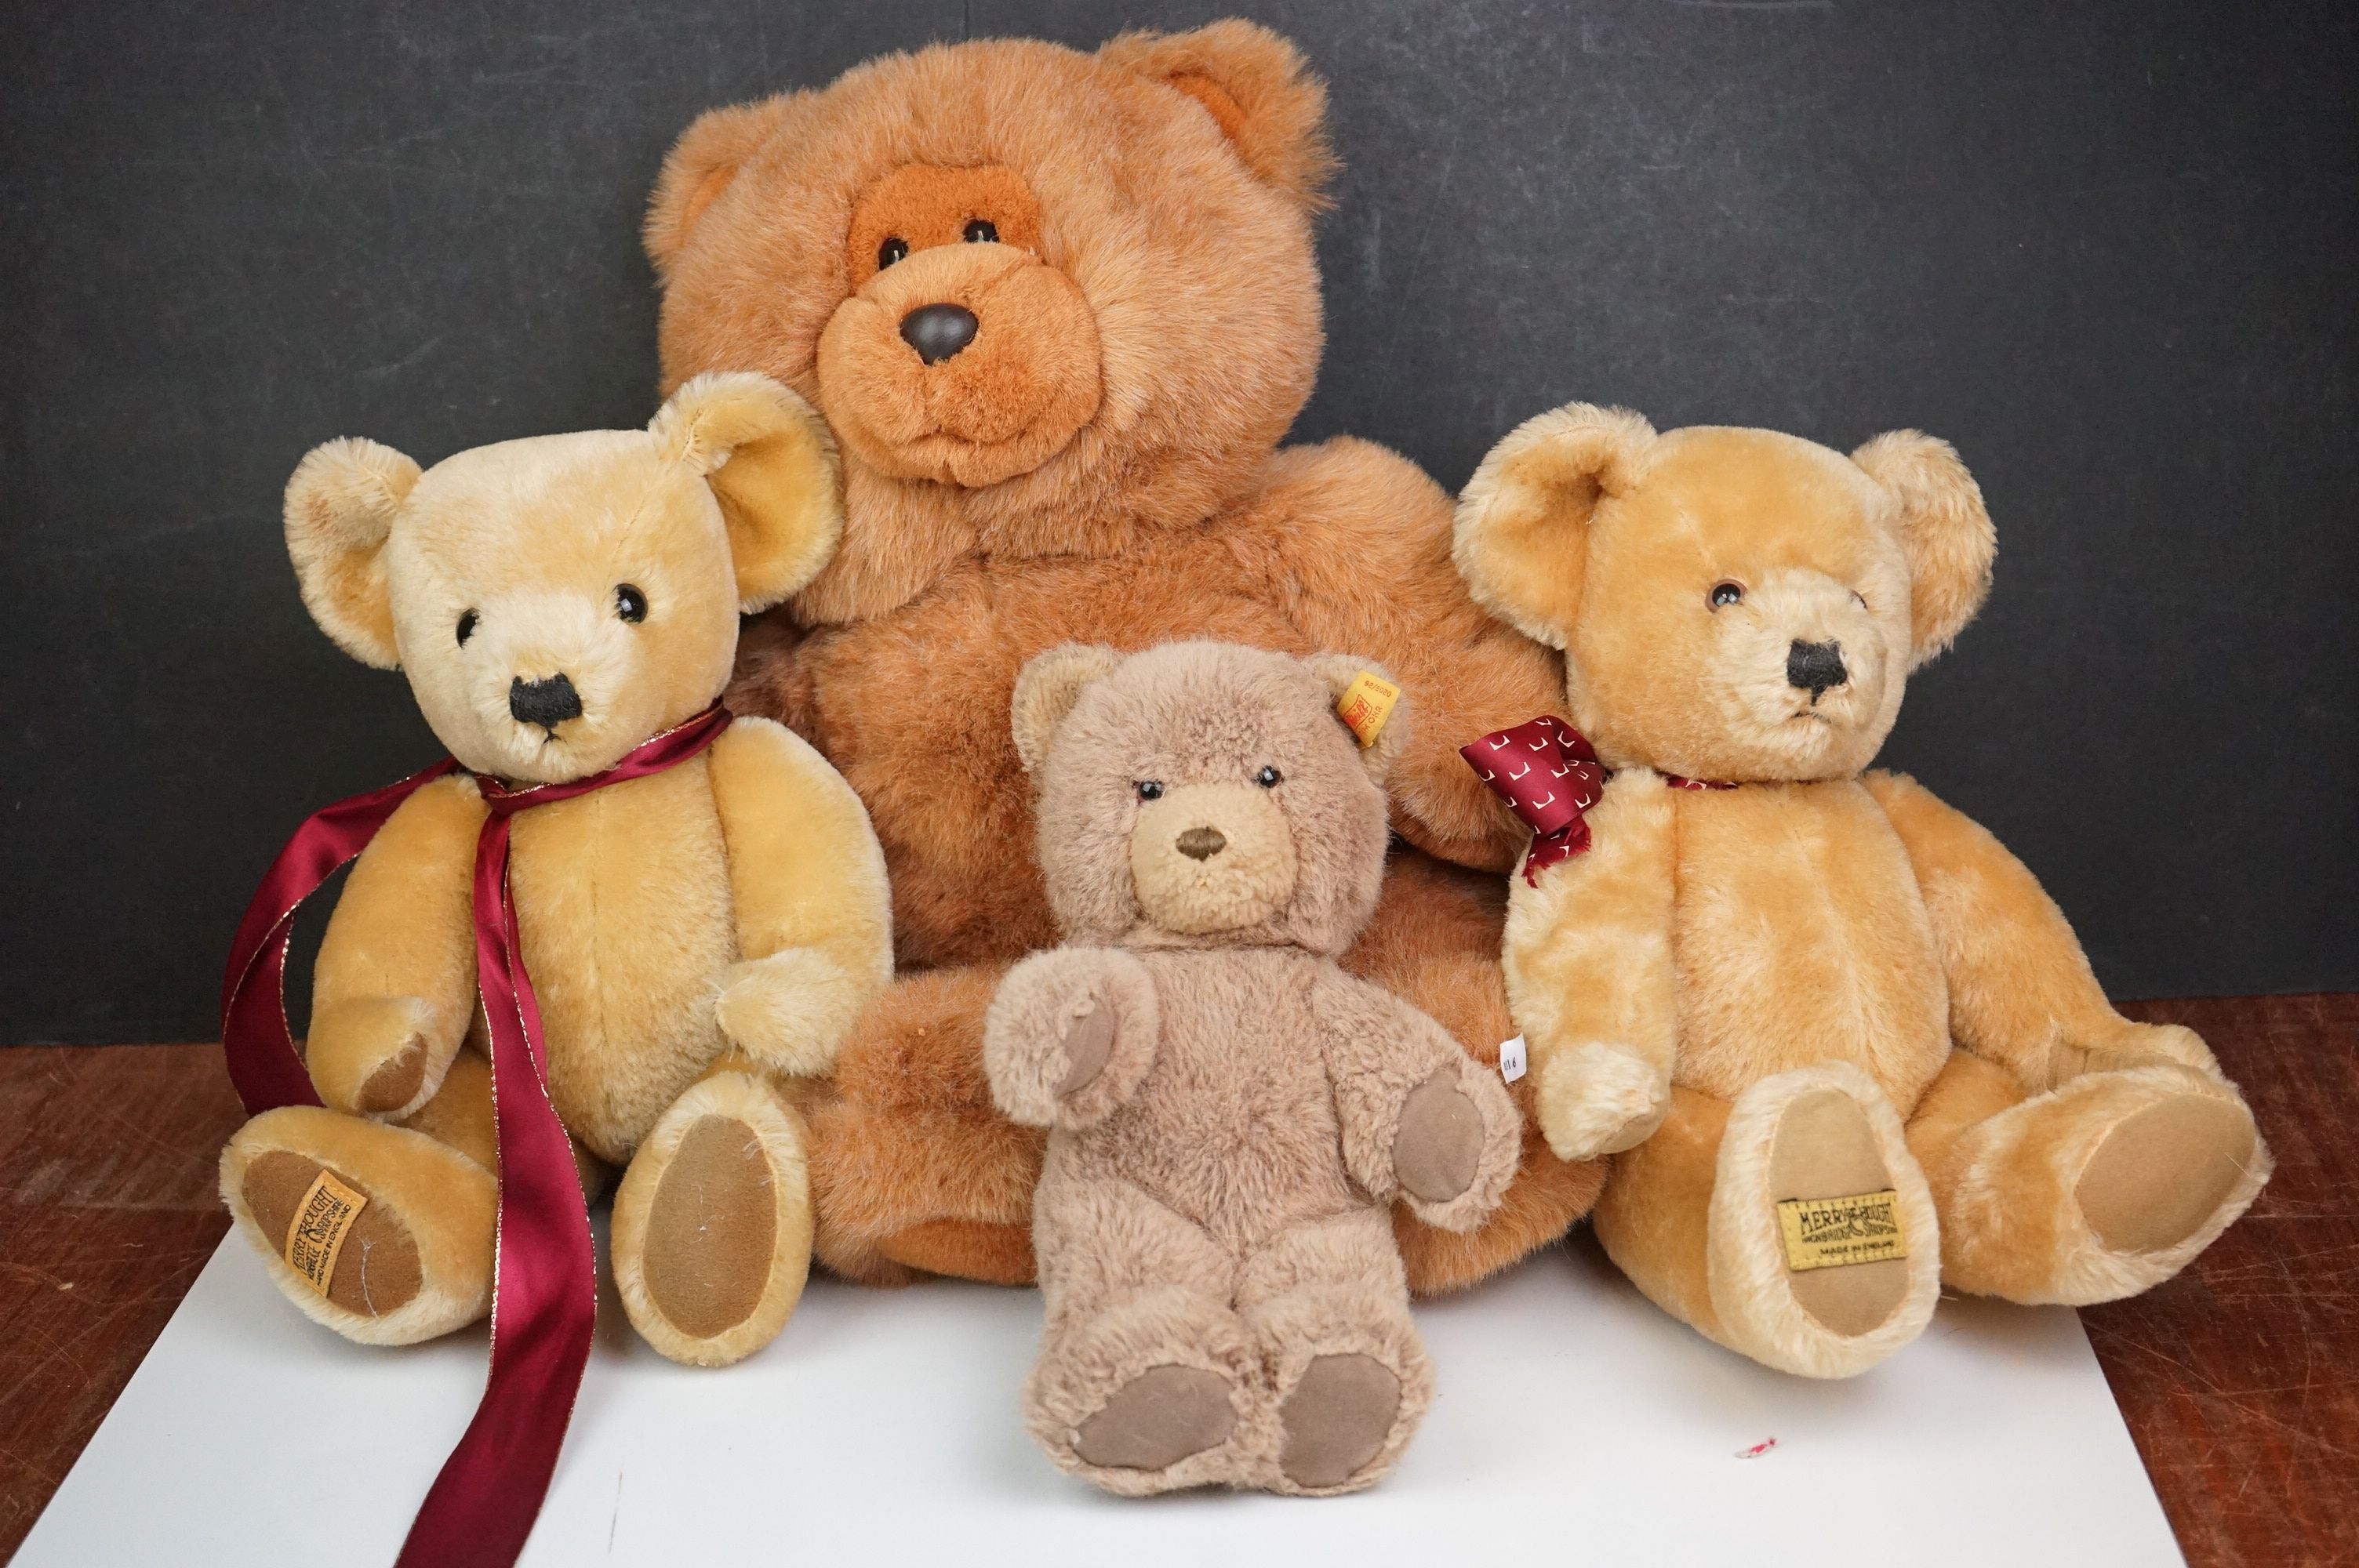 Steiff Teddy Bear, Two Merrythoughts Teddy Bears with Burgundy & Gold Ribbons to neck plus one